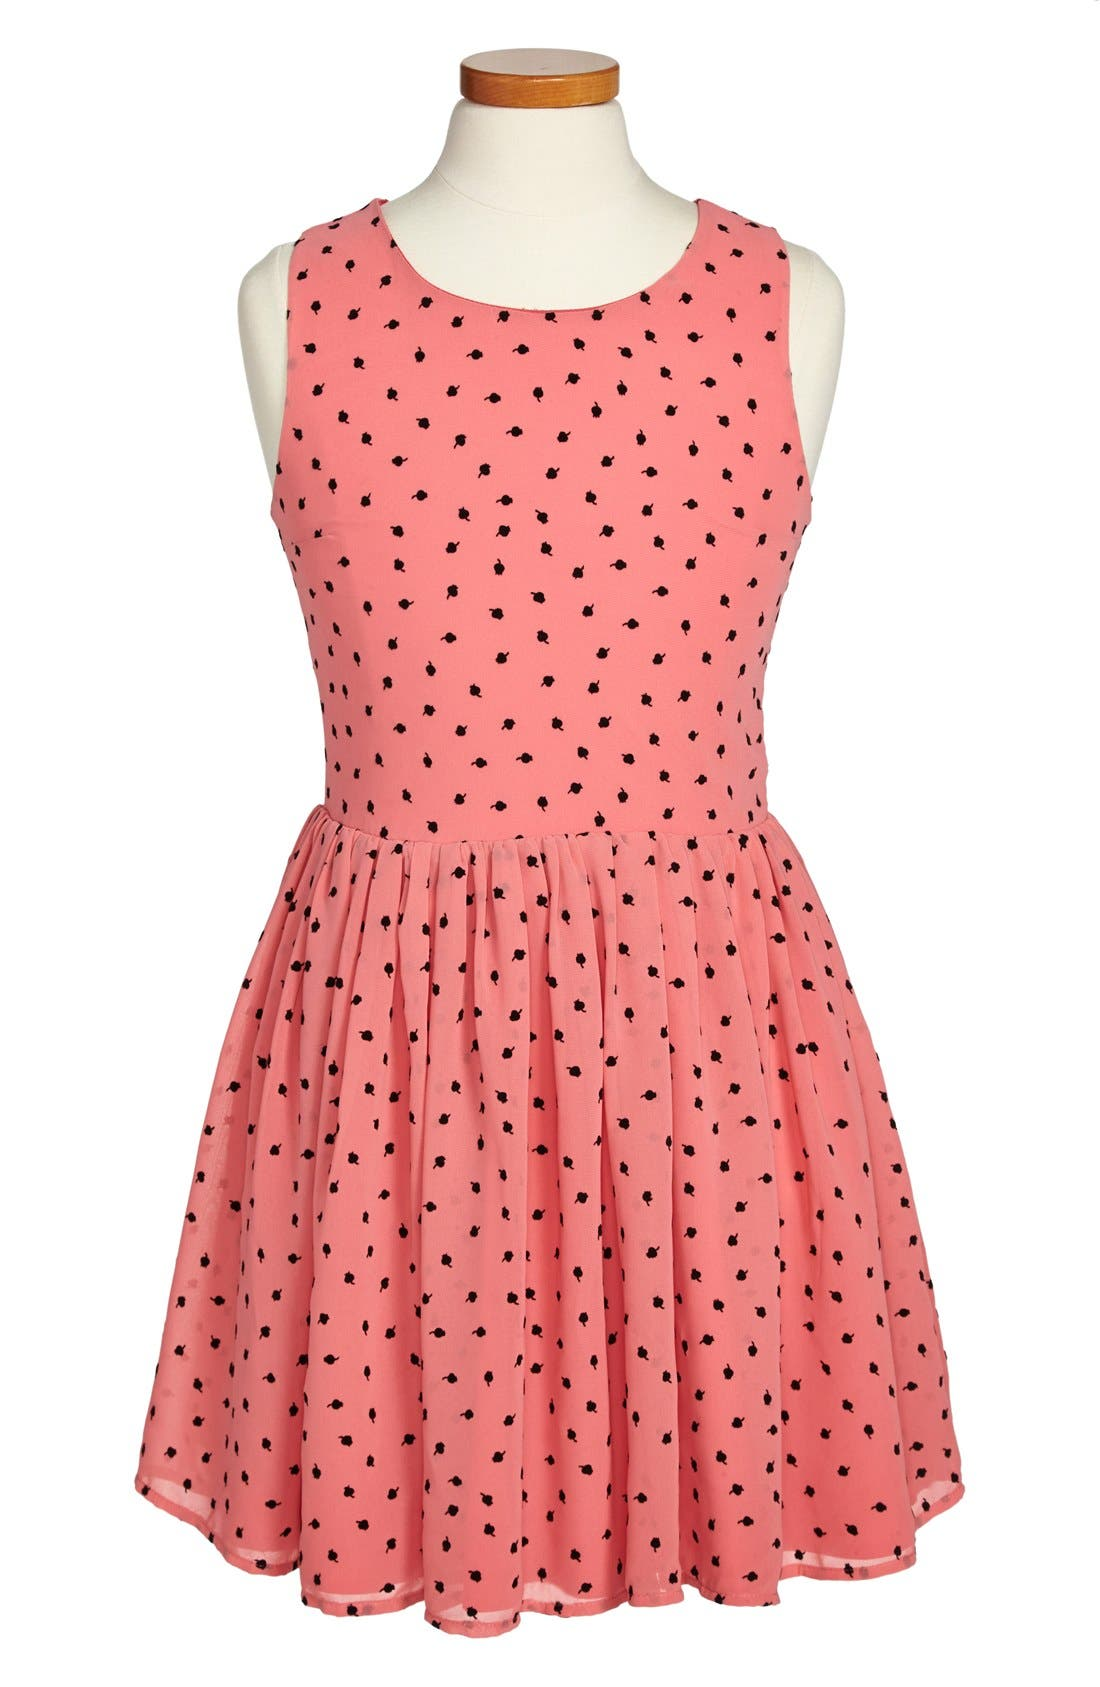 Main Image - Miss Behave 'Tulip' Chiffon Dress (Big Girls)